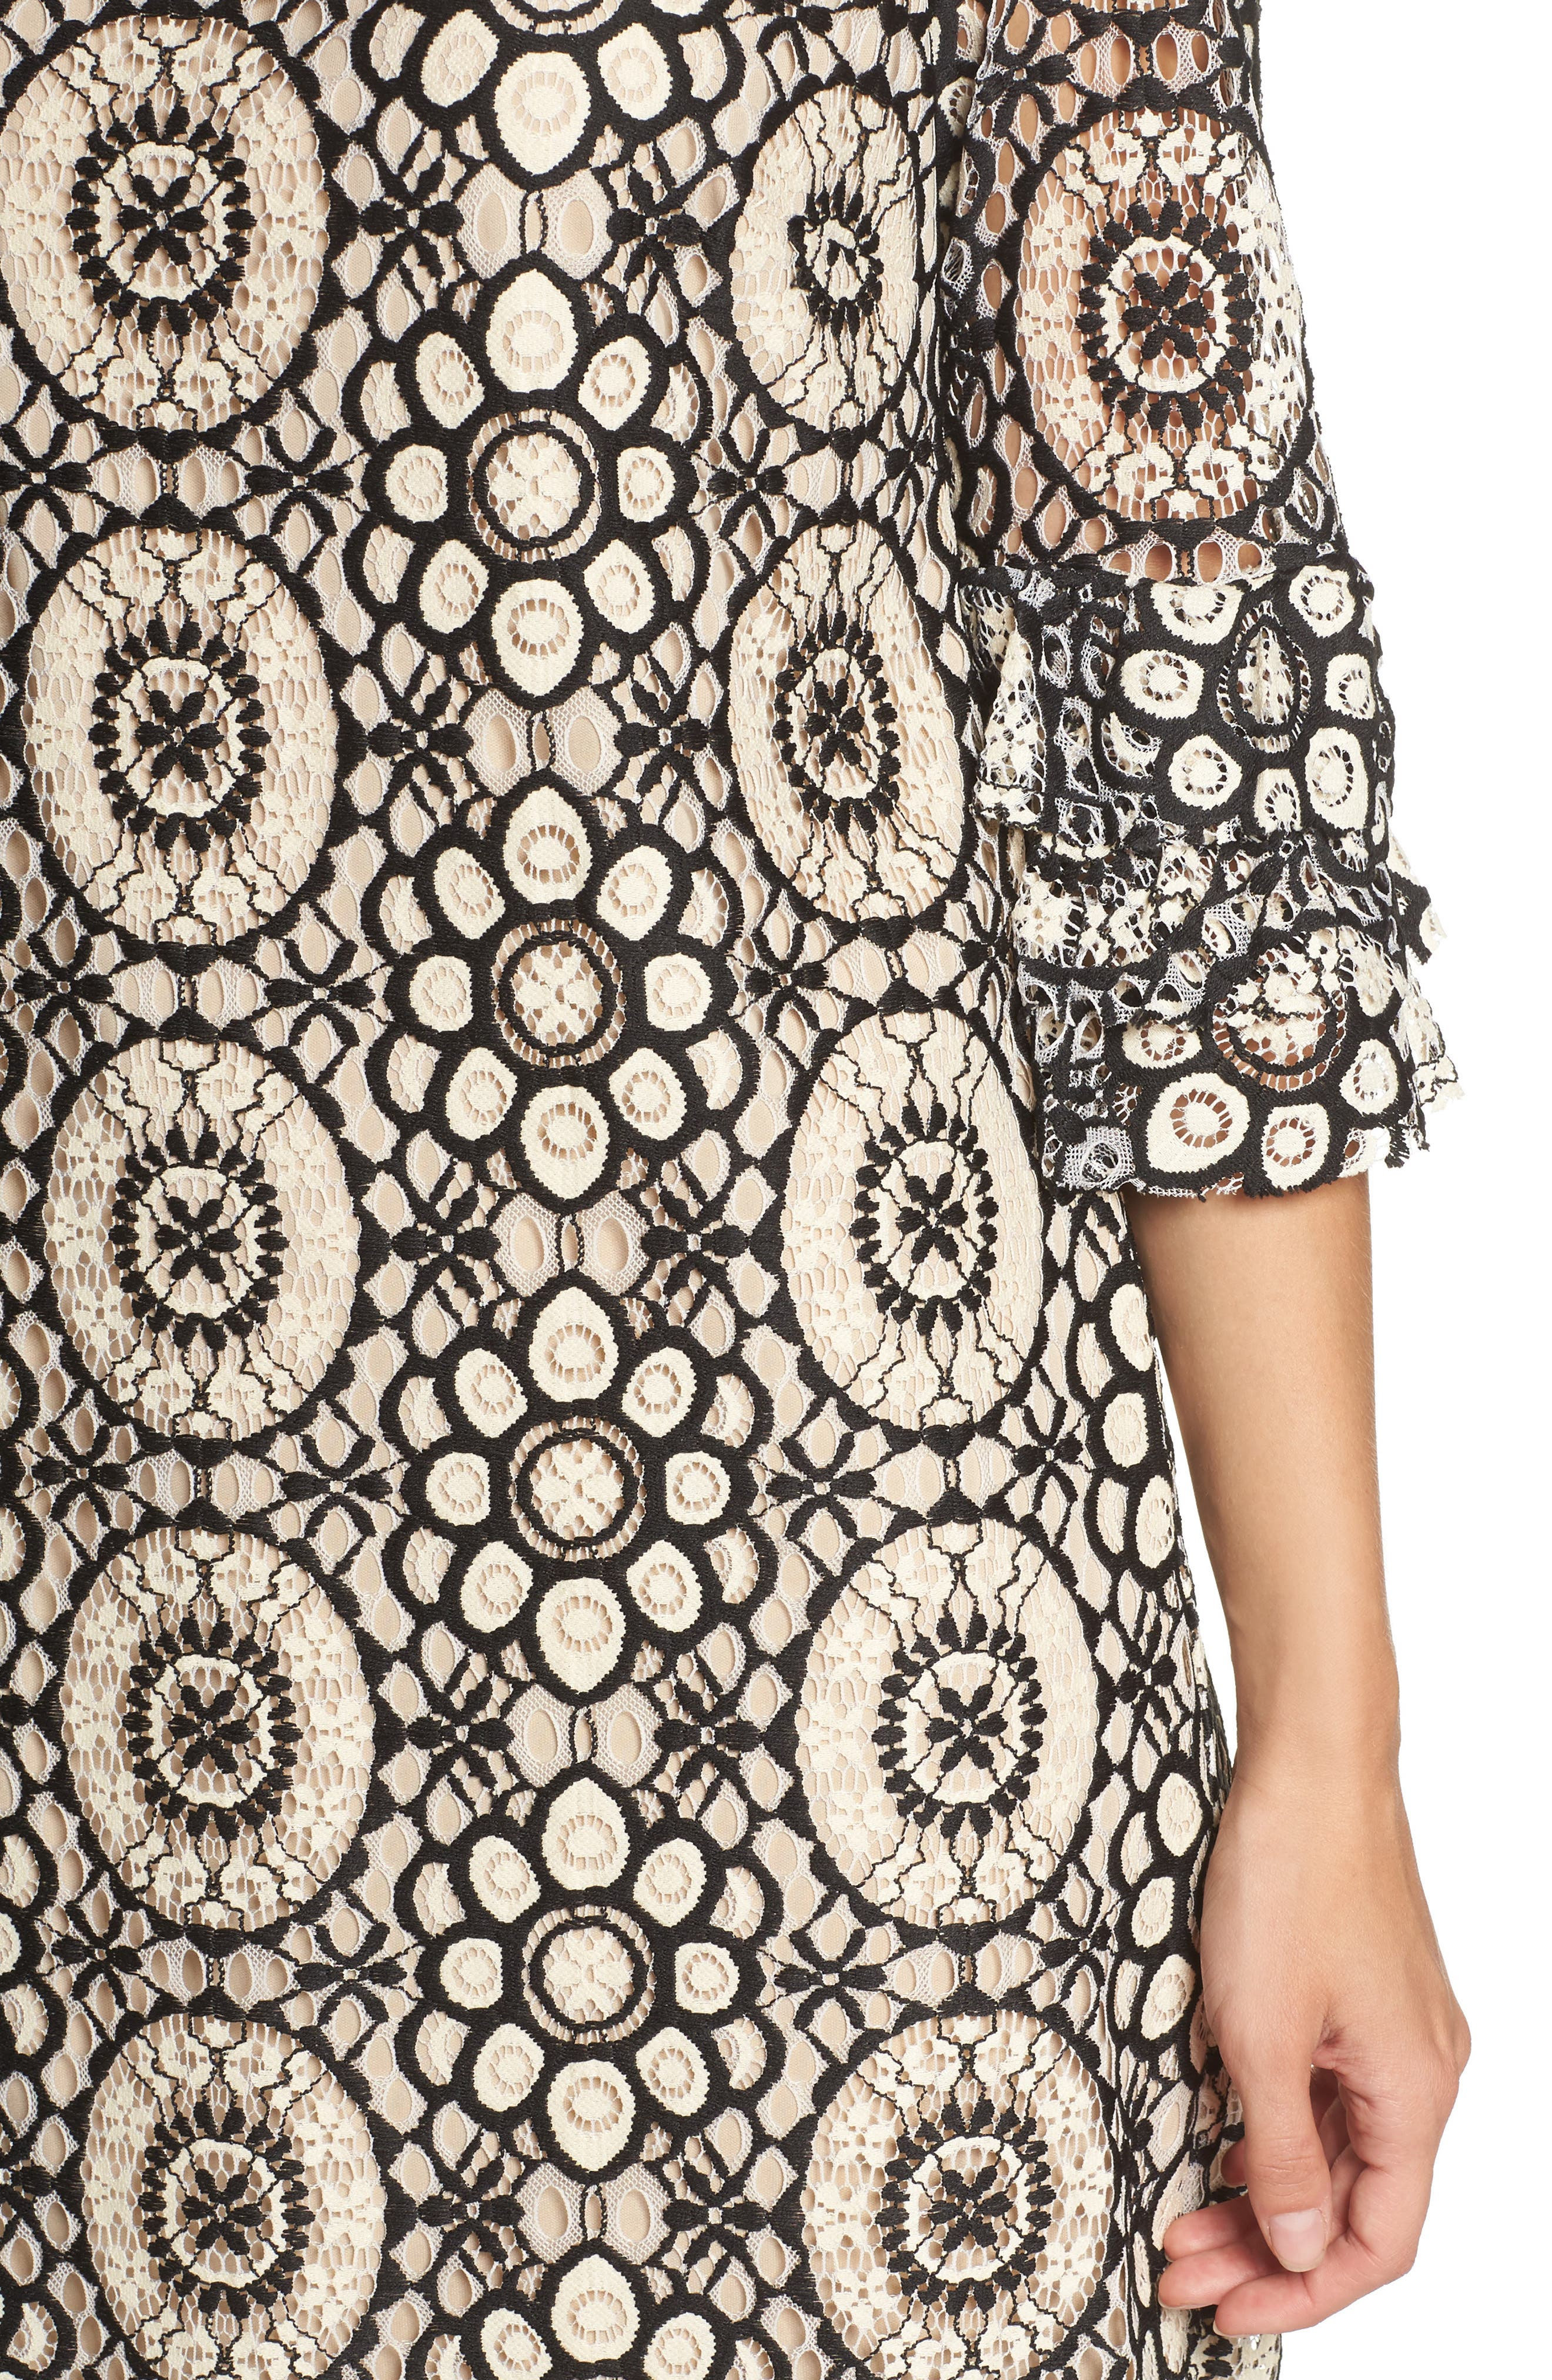 Tiered Sleeve Lace Shift Dress,                             Alternate thumbnail 4, color,                             901